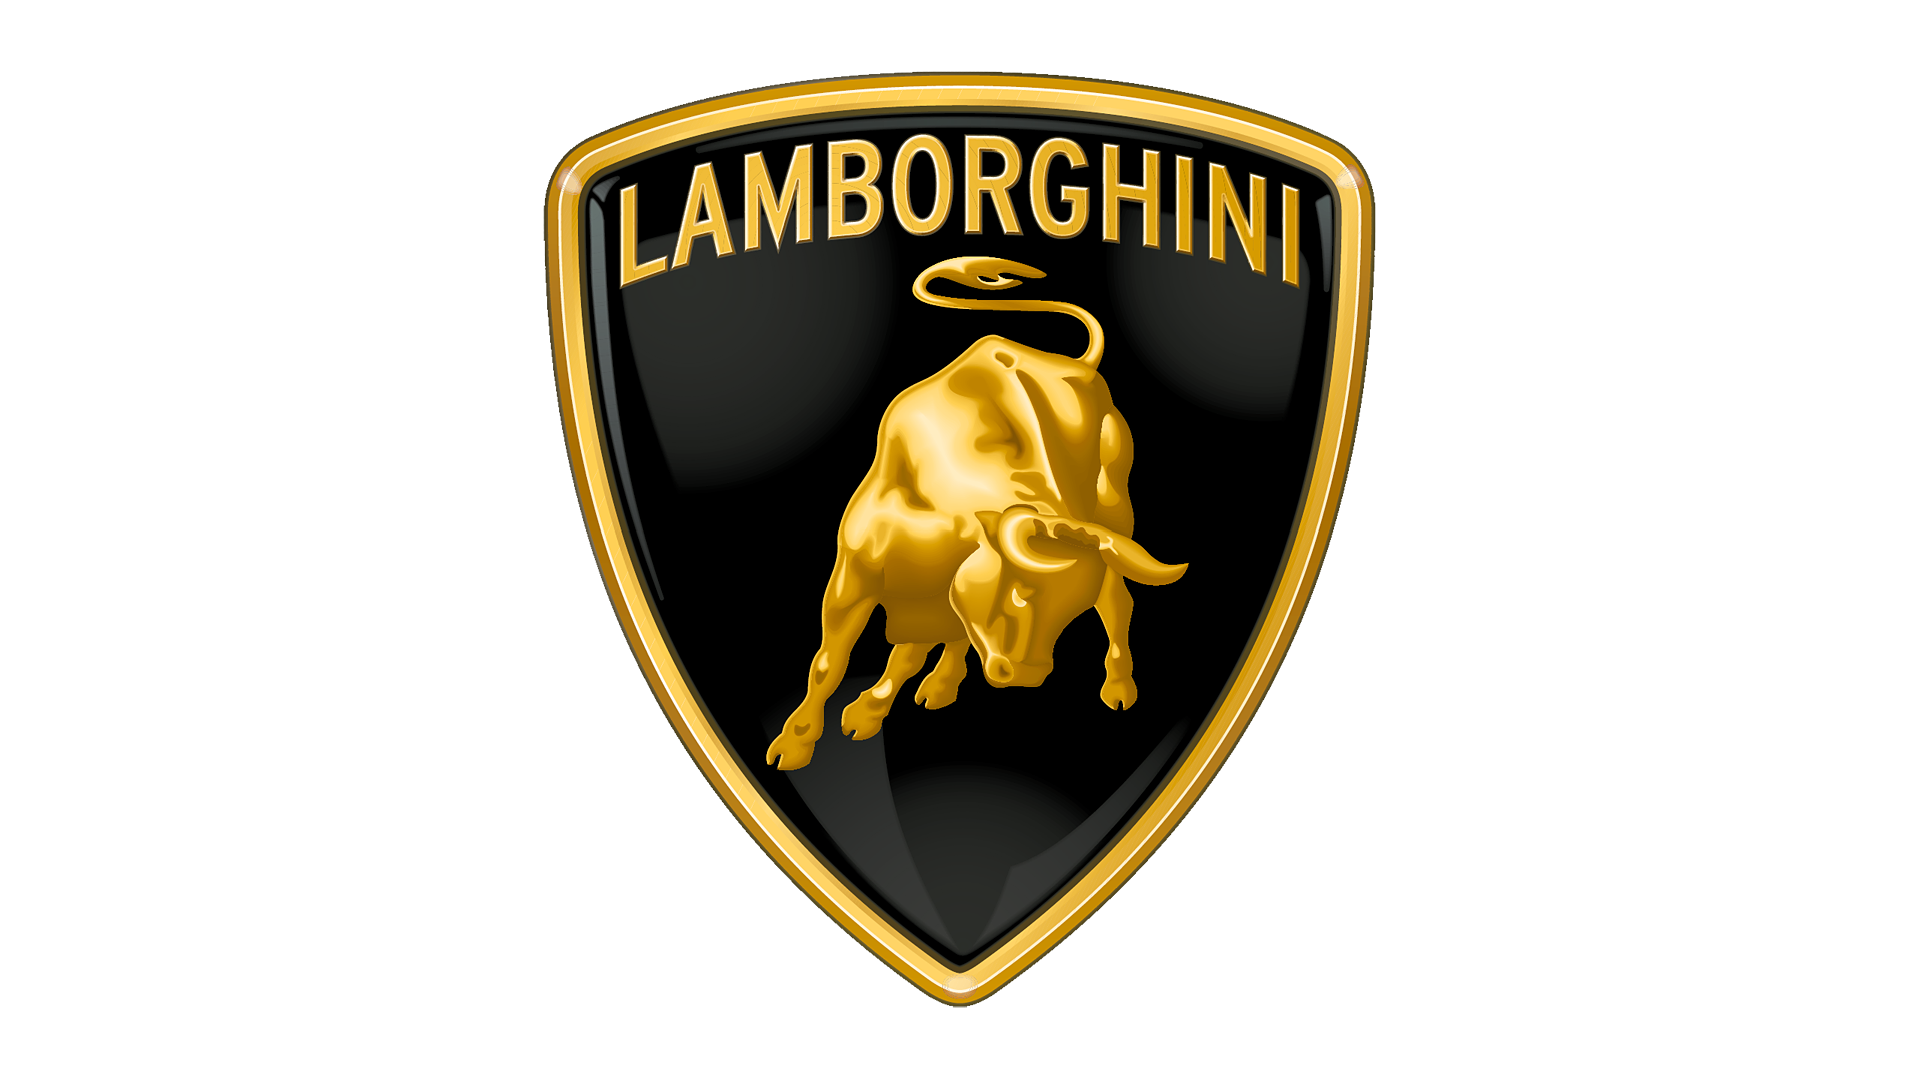 Lamborghini LP560/570 kit